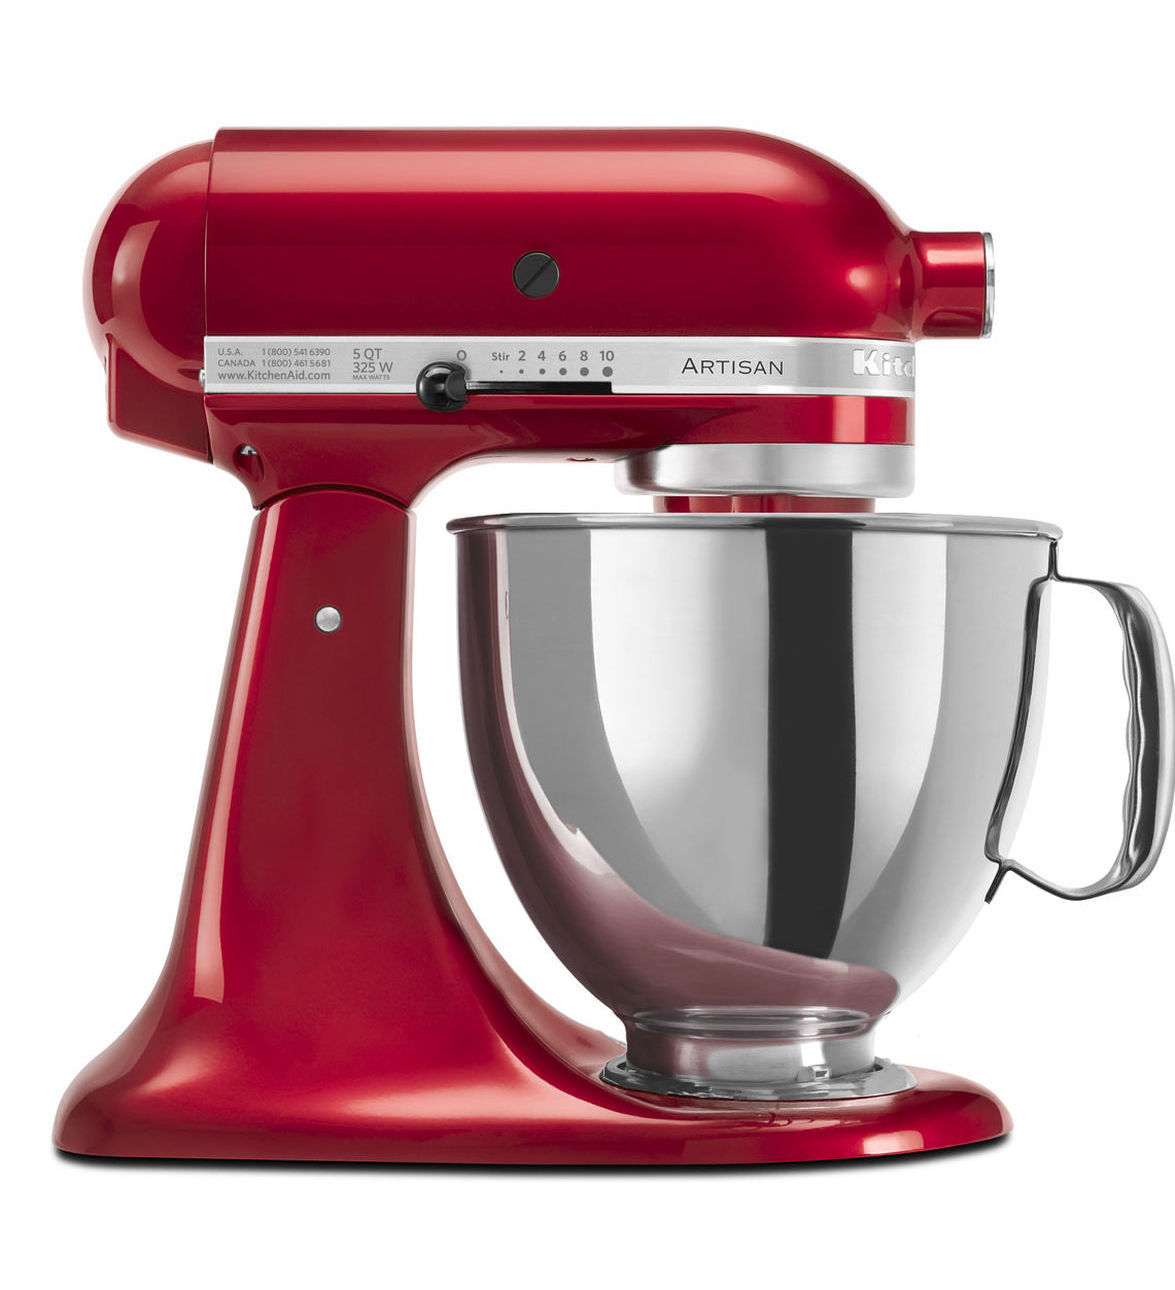 KitchenAid® Refurbished Artisan® Series 5 Quart Tilt-Head Stand Mixer, RRK150 Candy Apple Red